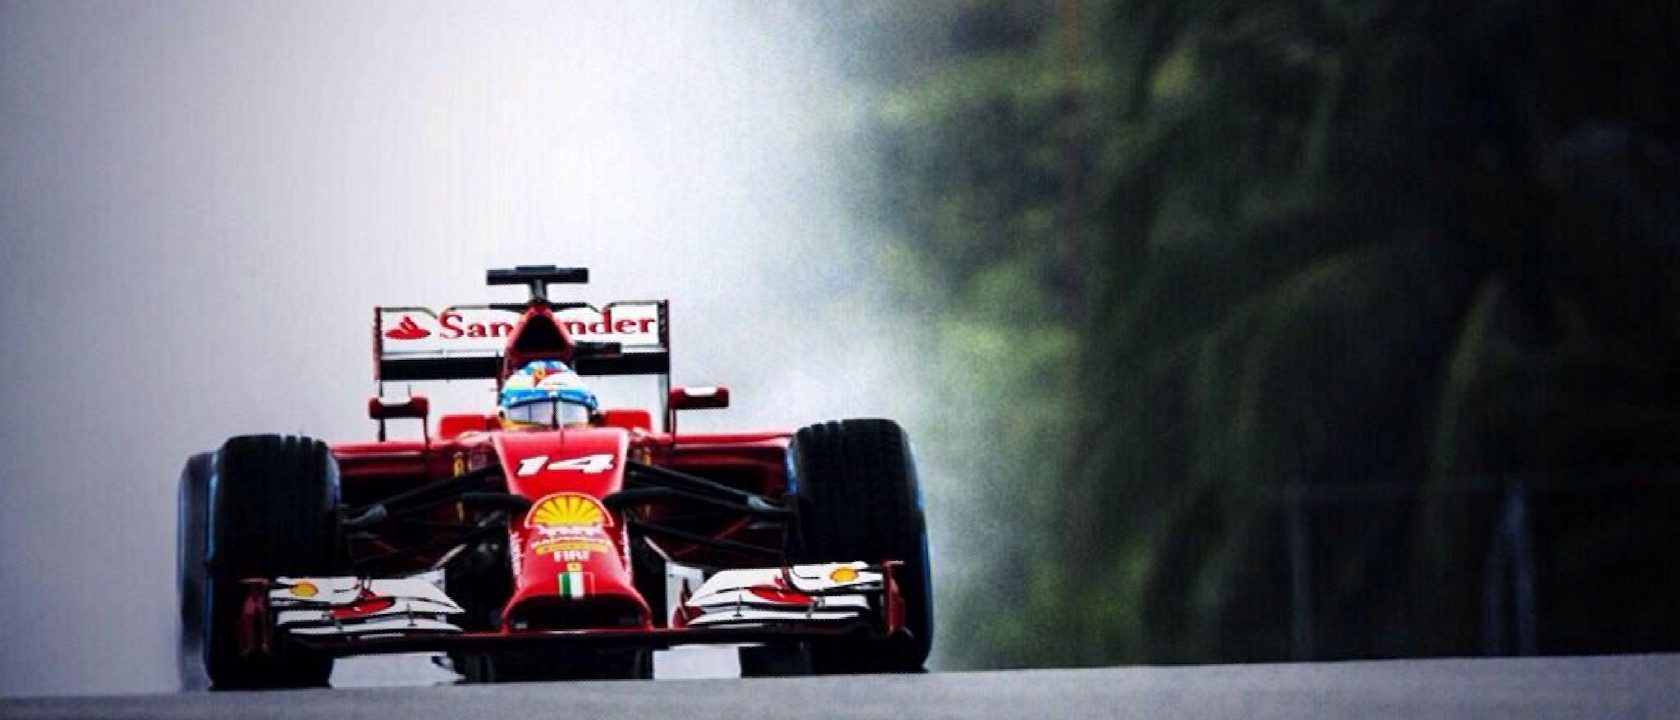 alonso_wet-1680x720